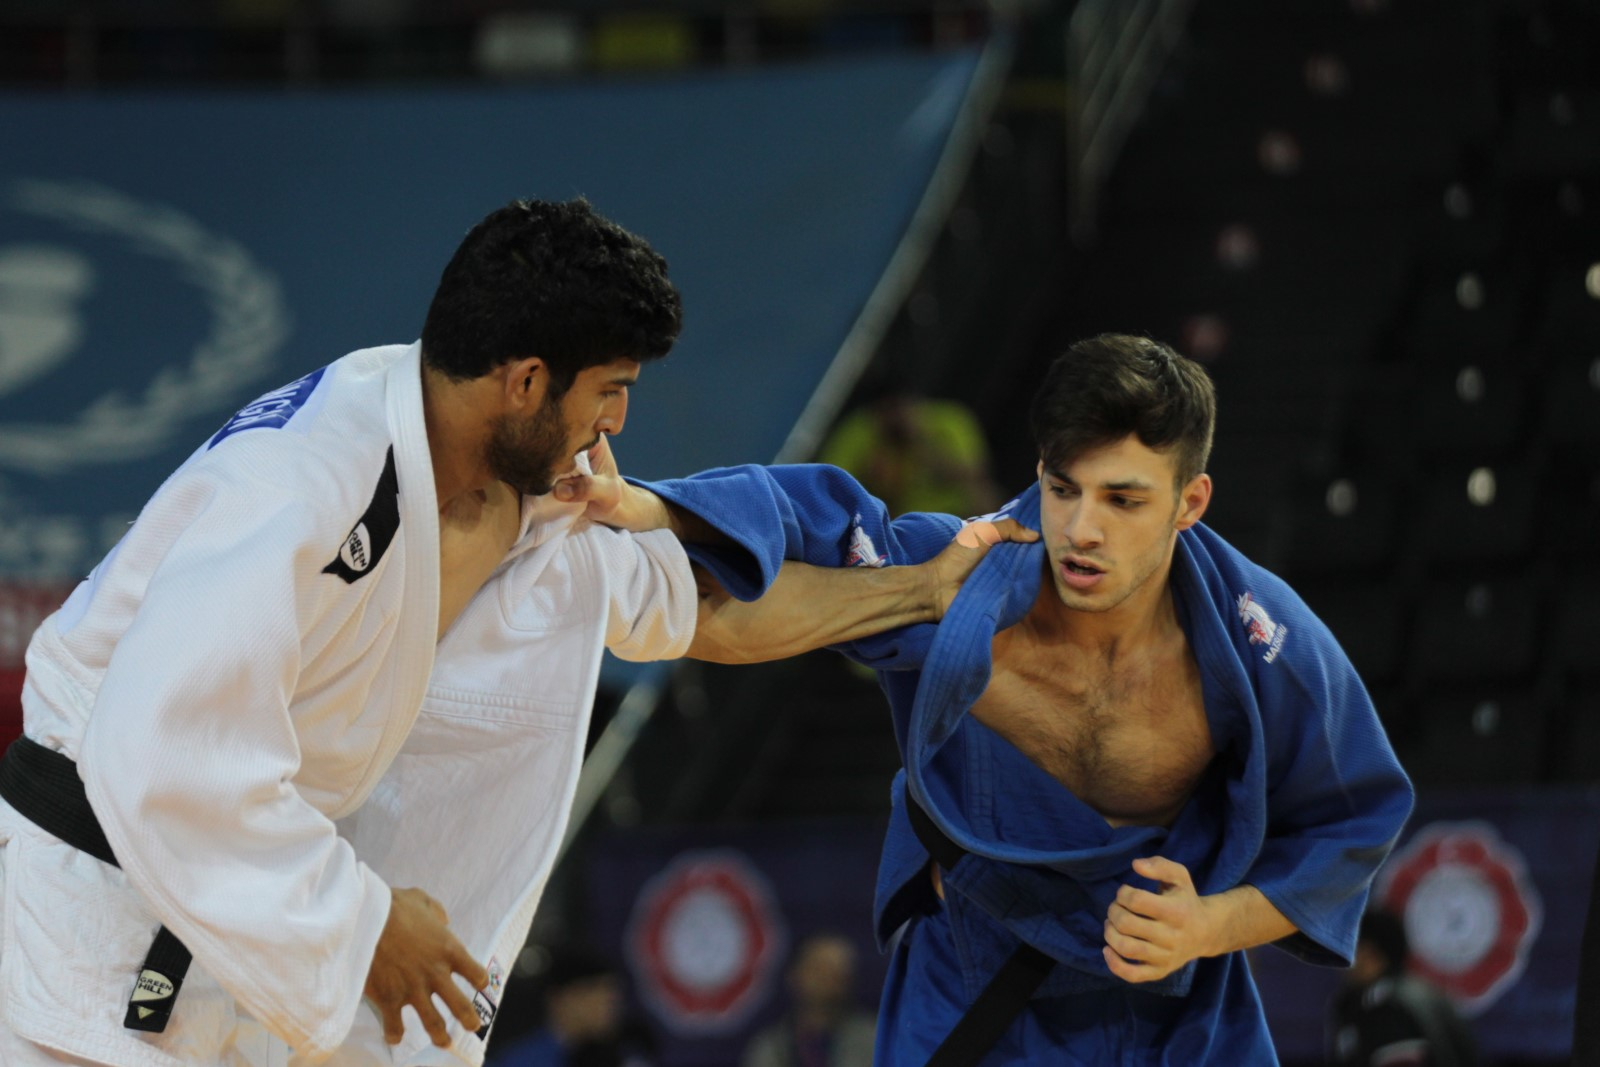 Avtar Singh in World Judo Championship 2017